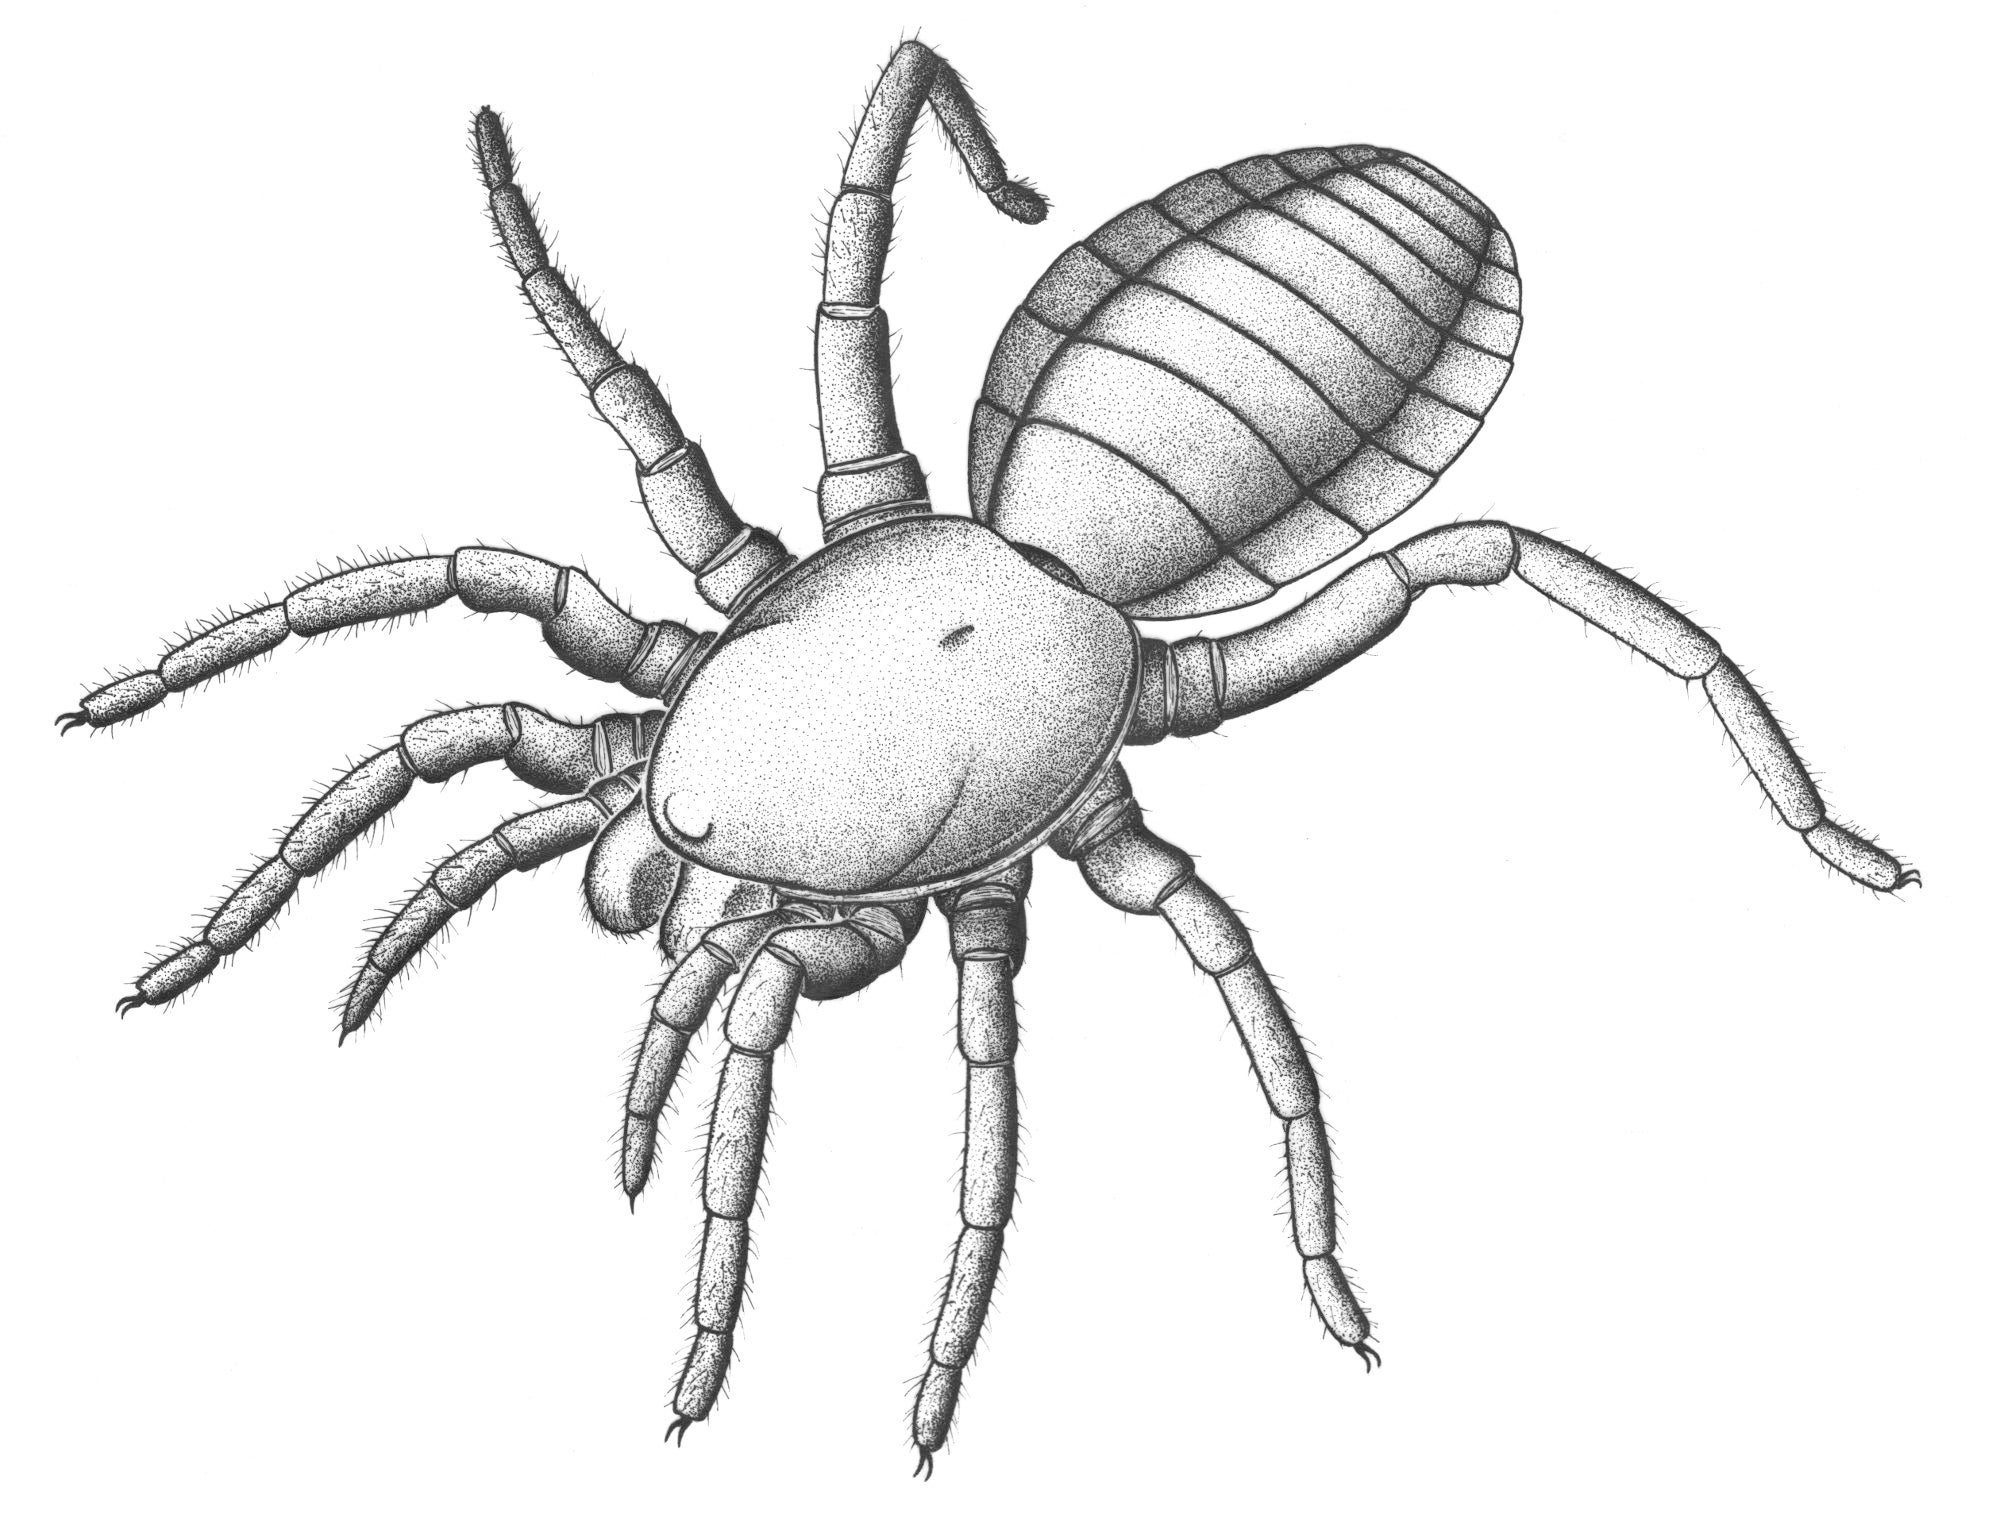 a history of tarantulas The natural history of tarantula spiders richard c gallon introduction in this article i have attempted to present a varied, fresh account of what a.